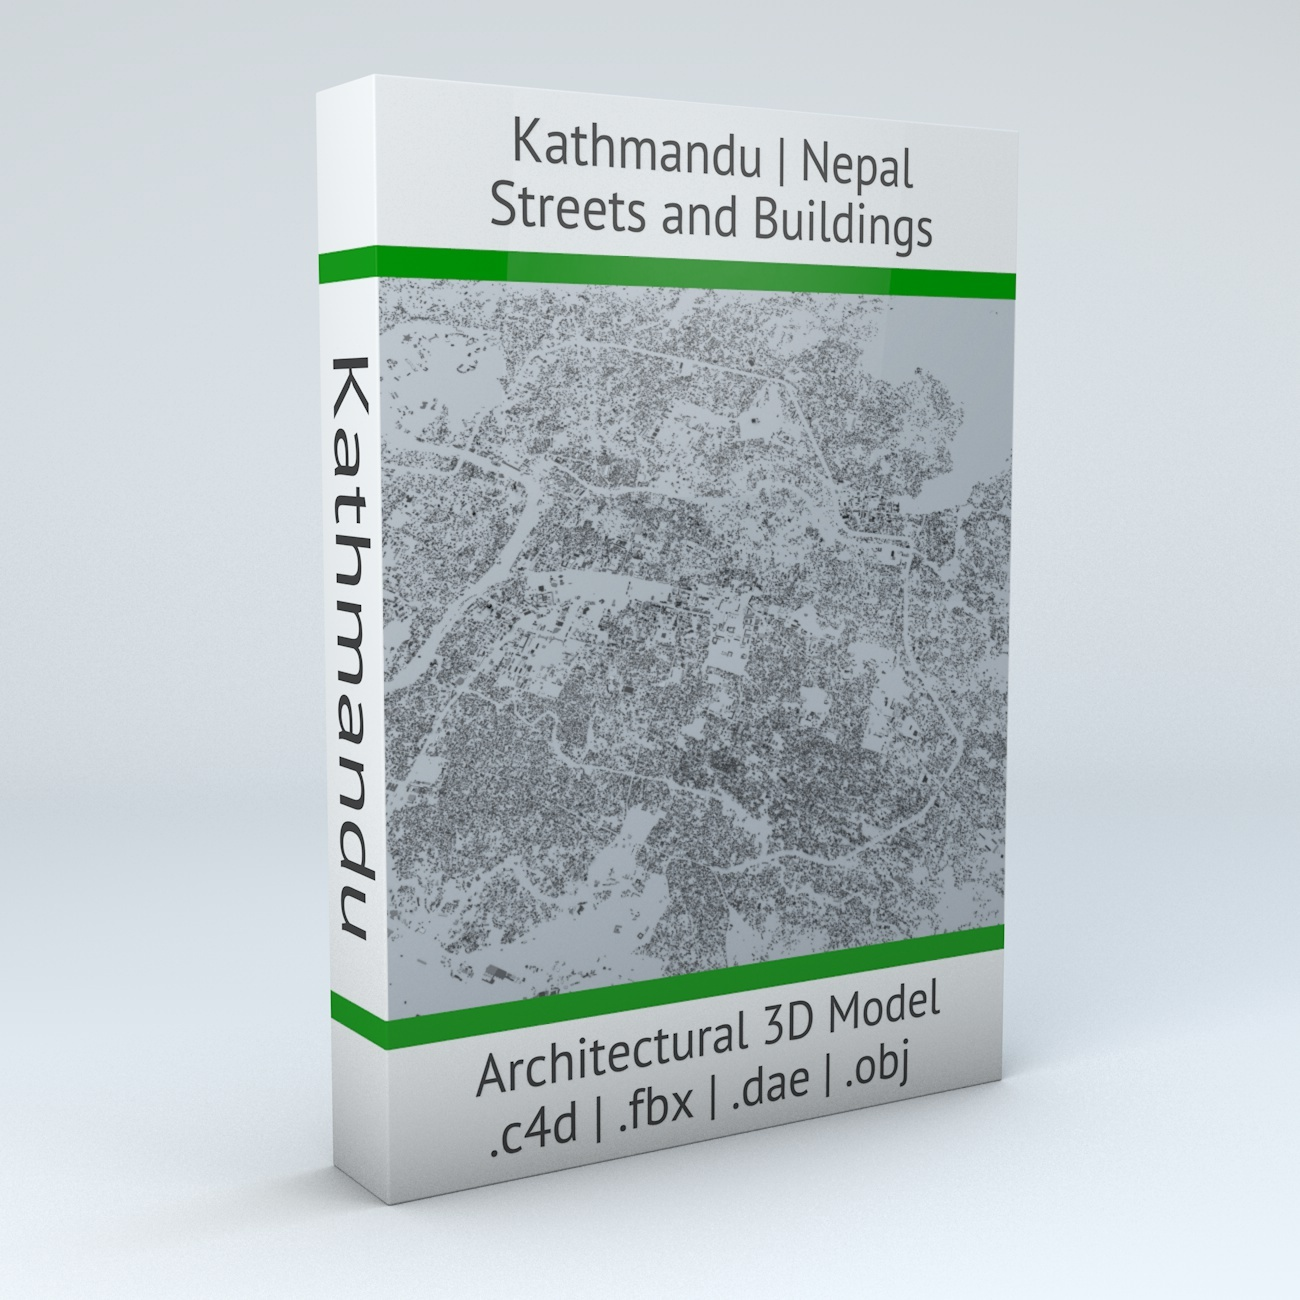 Kathmandu Streets and Buildings Architectural 3D Model